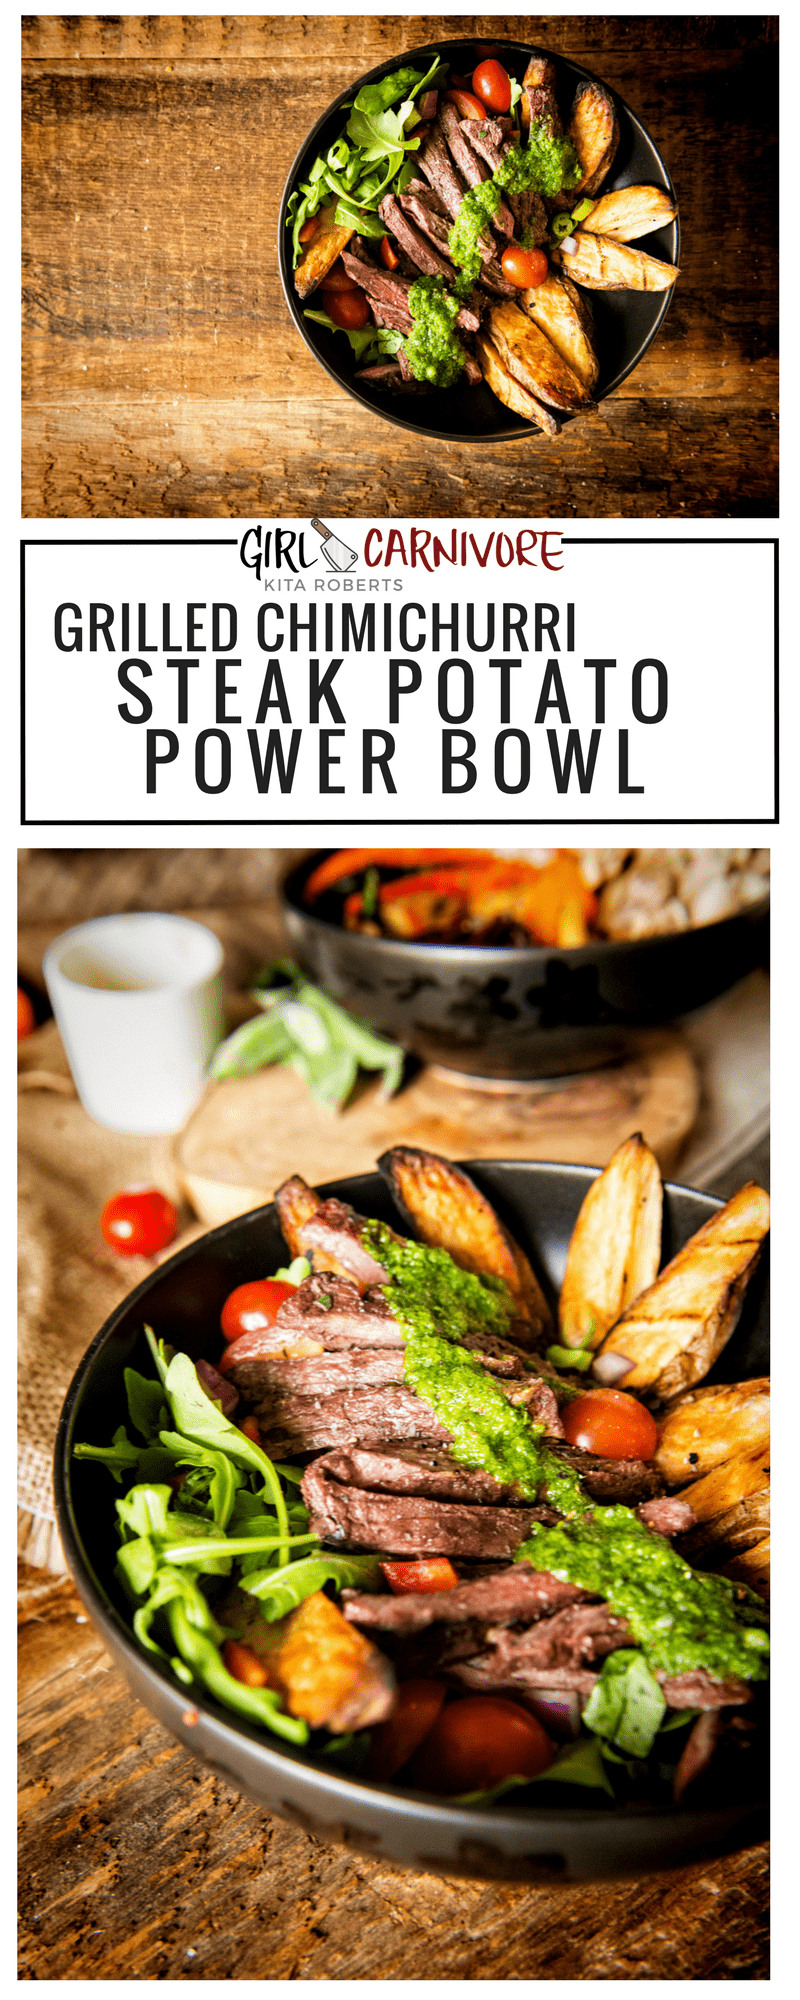 Grillled Chimichurri Steak Potato Power Bowl